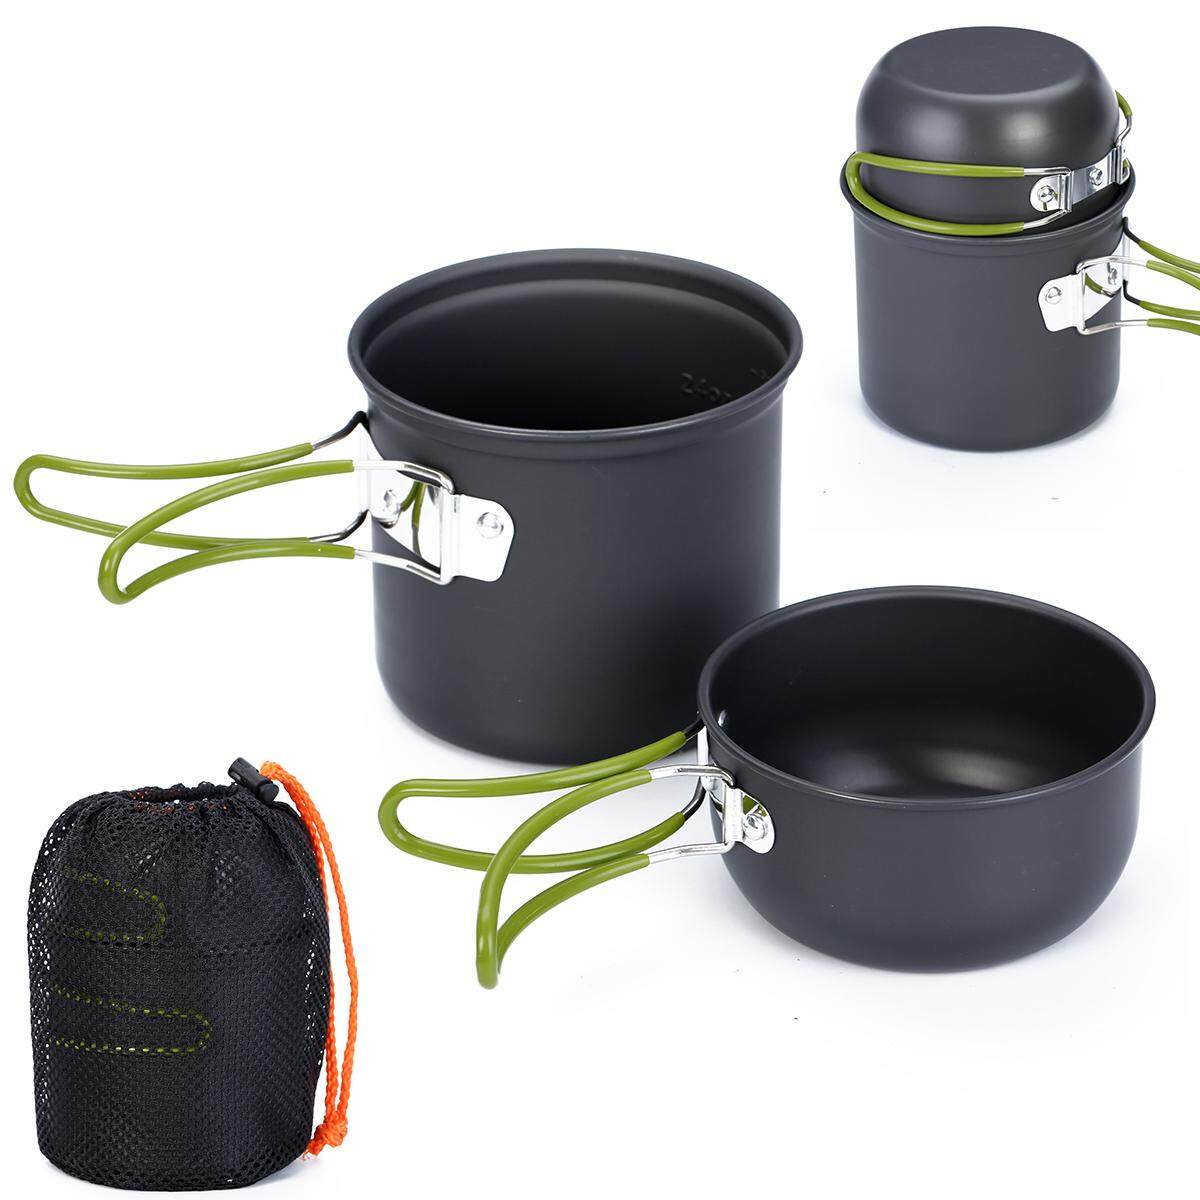 Sports & Entertainment Camping & Hiking Outdoor Camping Cookware Set Portale Tableware Cooking Travel Cutlery Utensils Pot Pan Hiking Picnic Tools